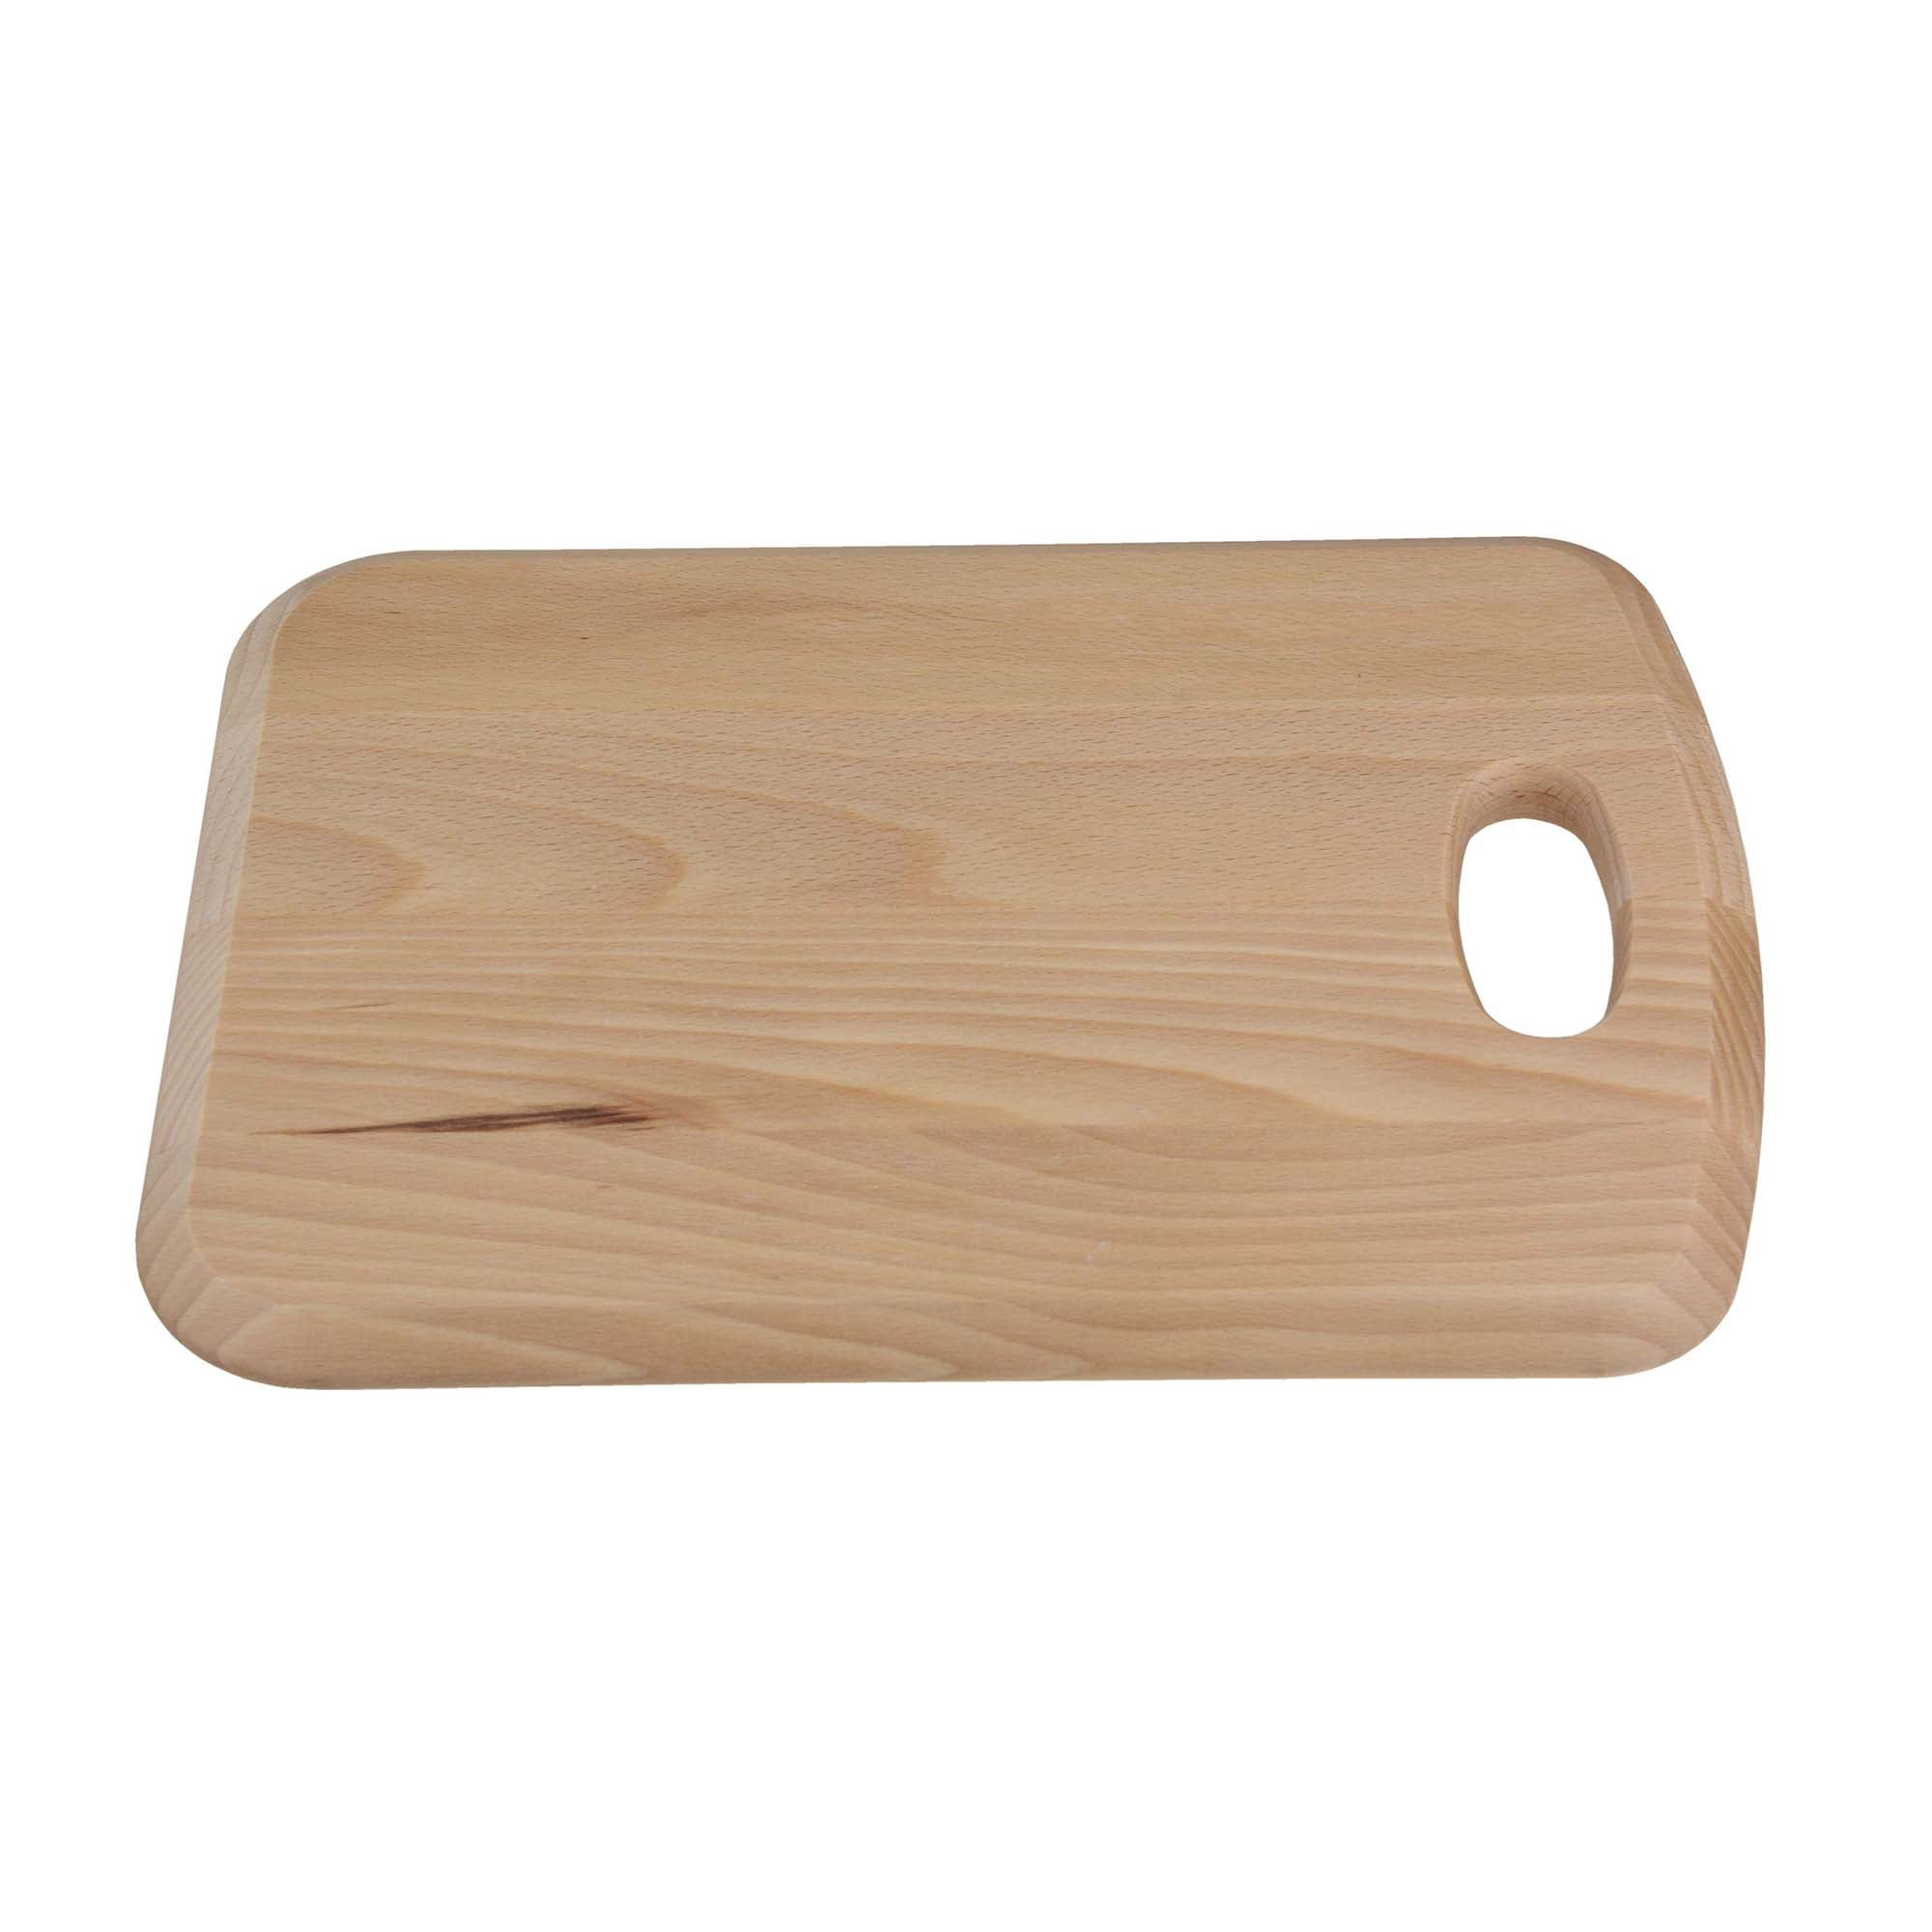 Curved Chopping Board